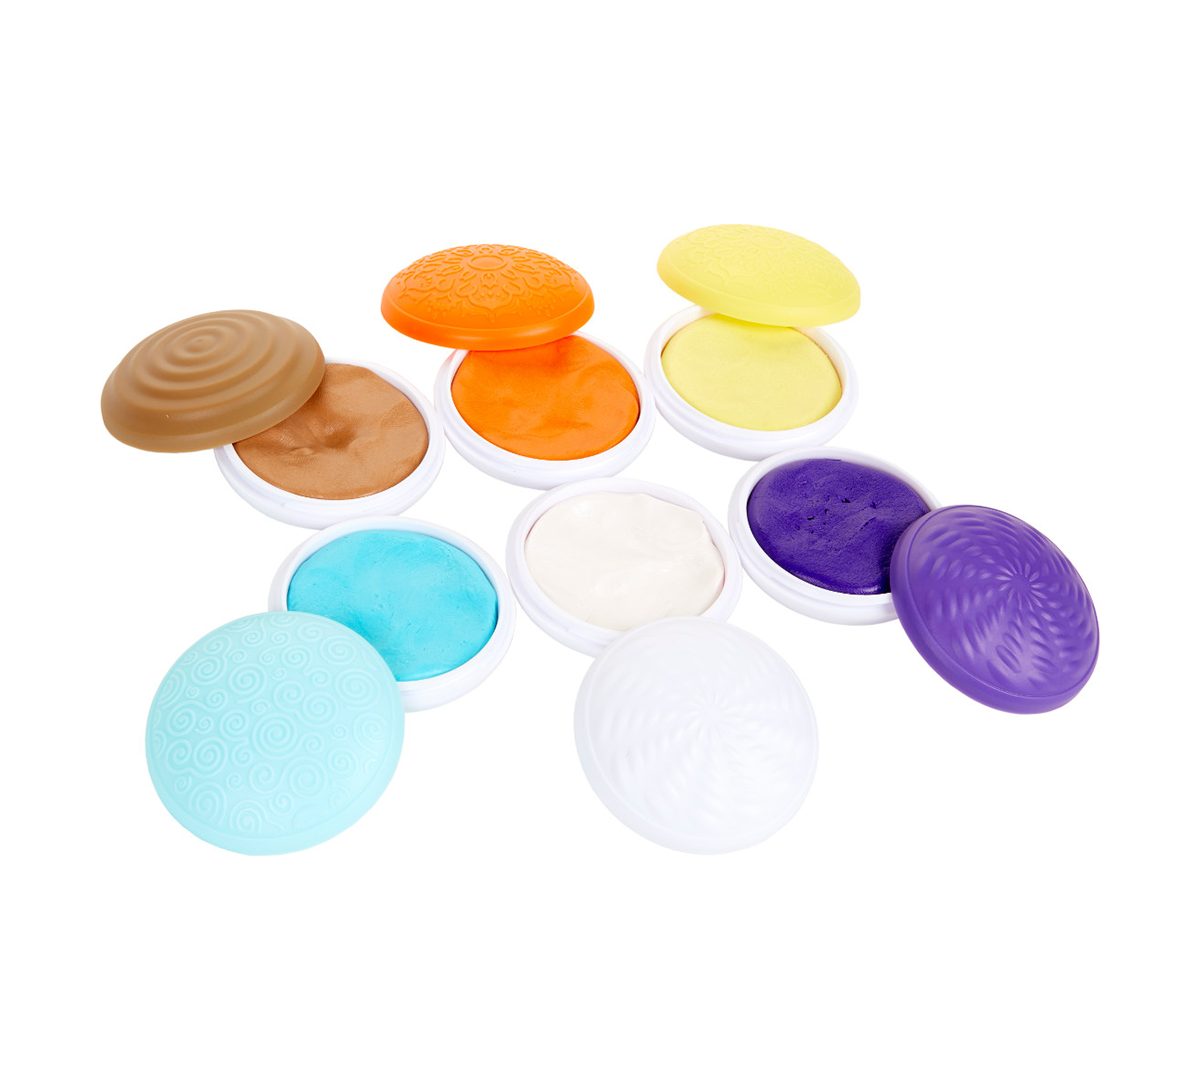 Crayola Aroma Putty Gift Set Relaxation Collection 6Count Silly Putty Alternative for Adults